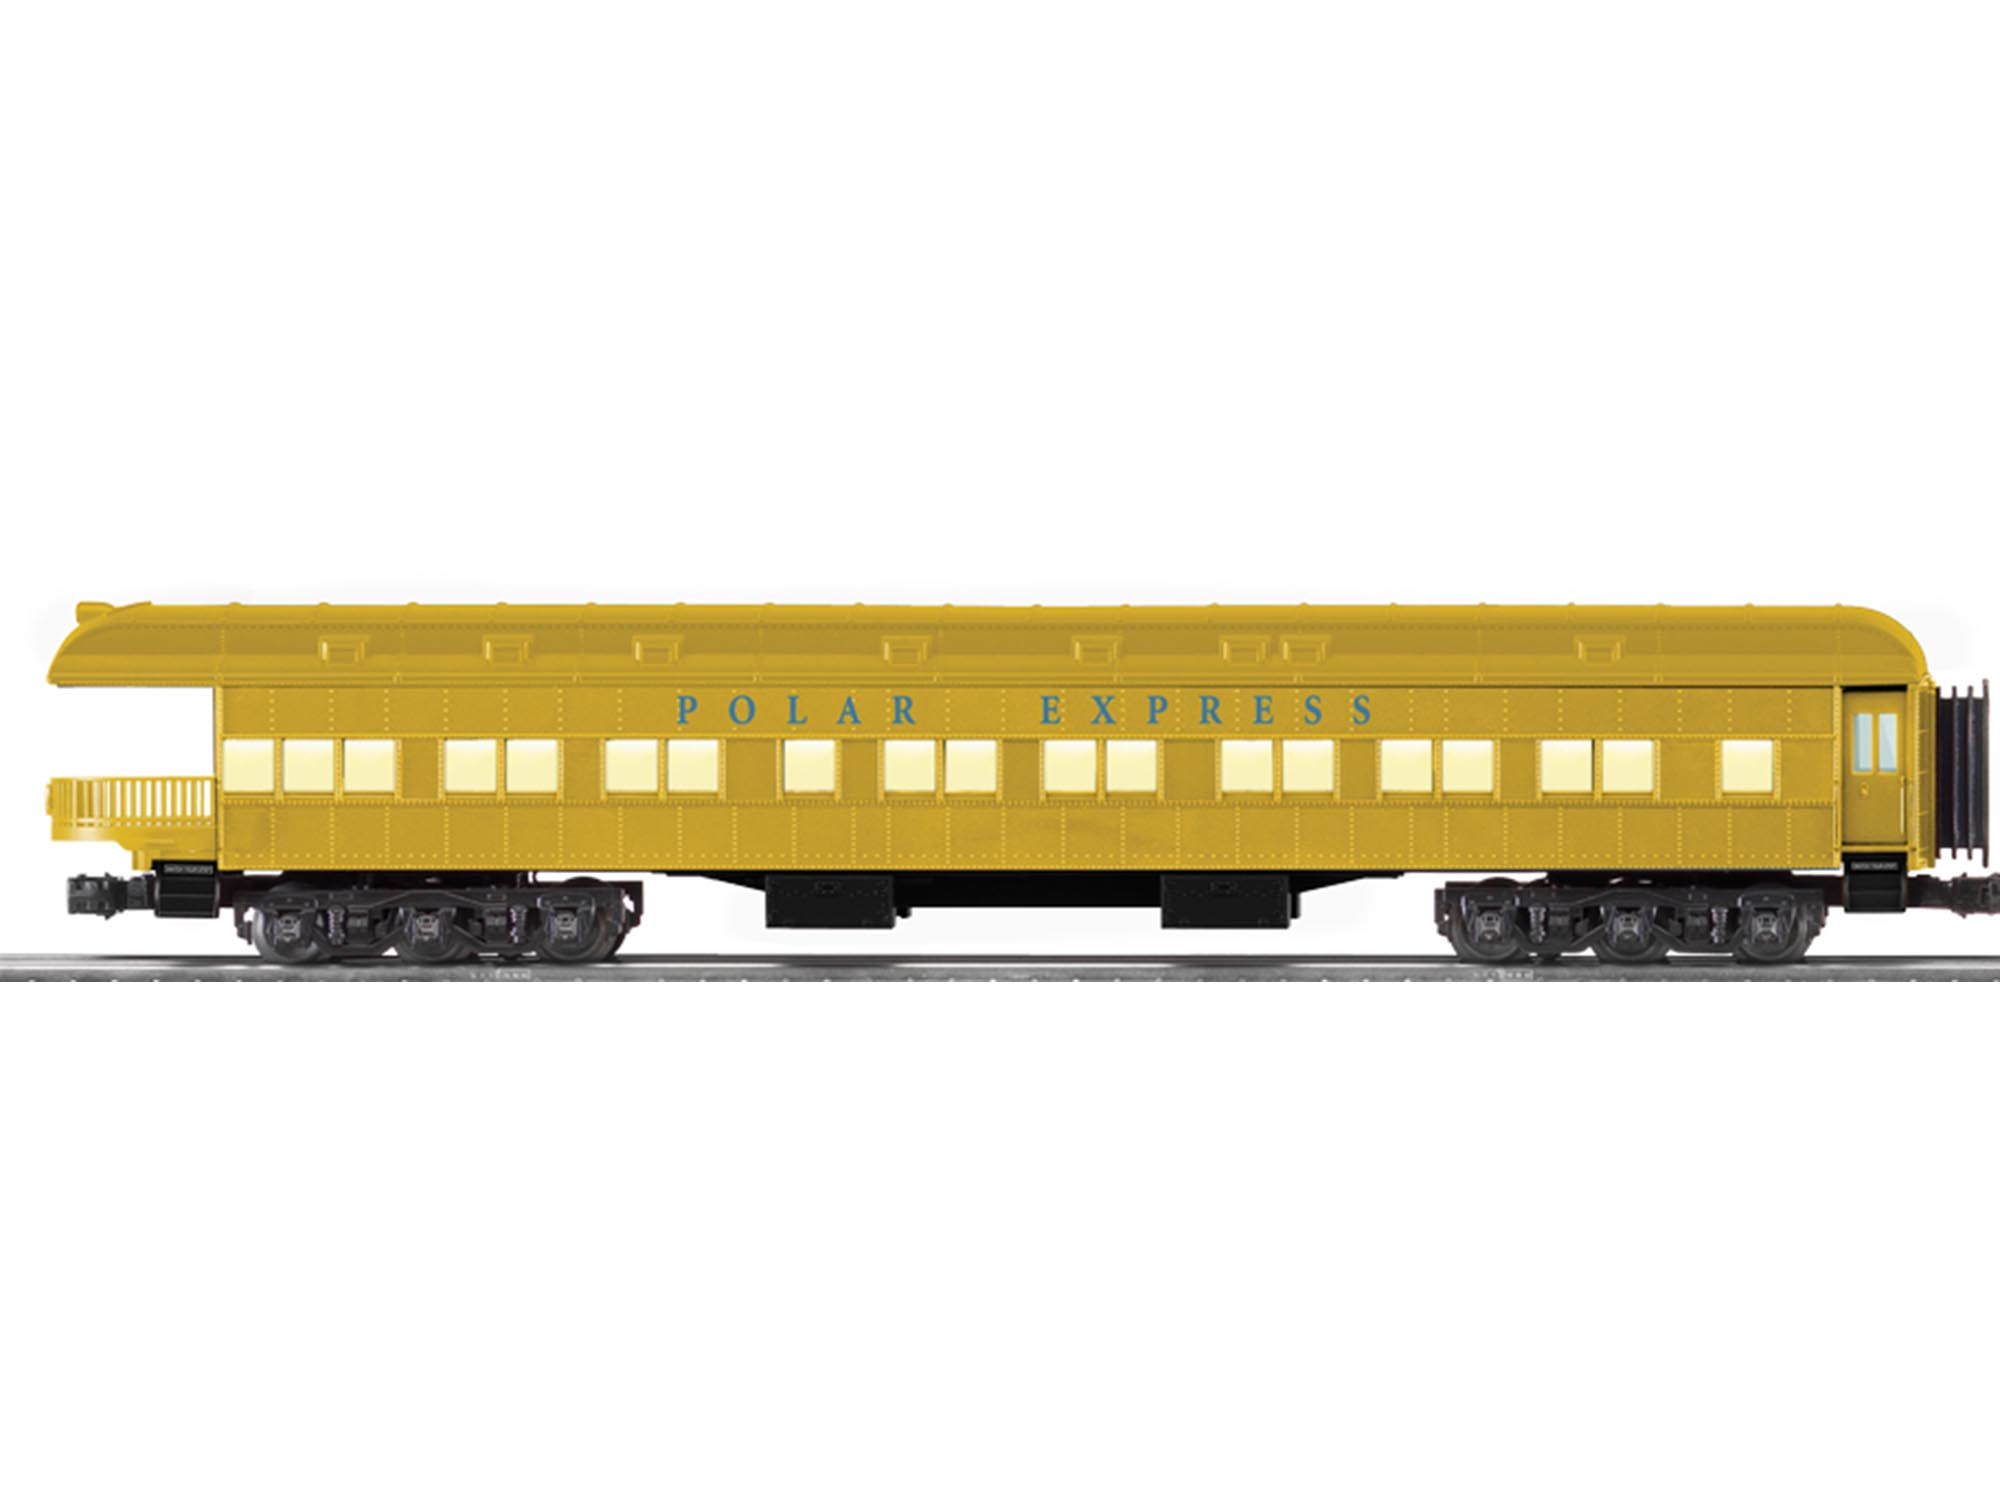 The Polar Express Heavyweight Scale Gold Edition Observation Car